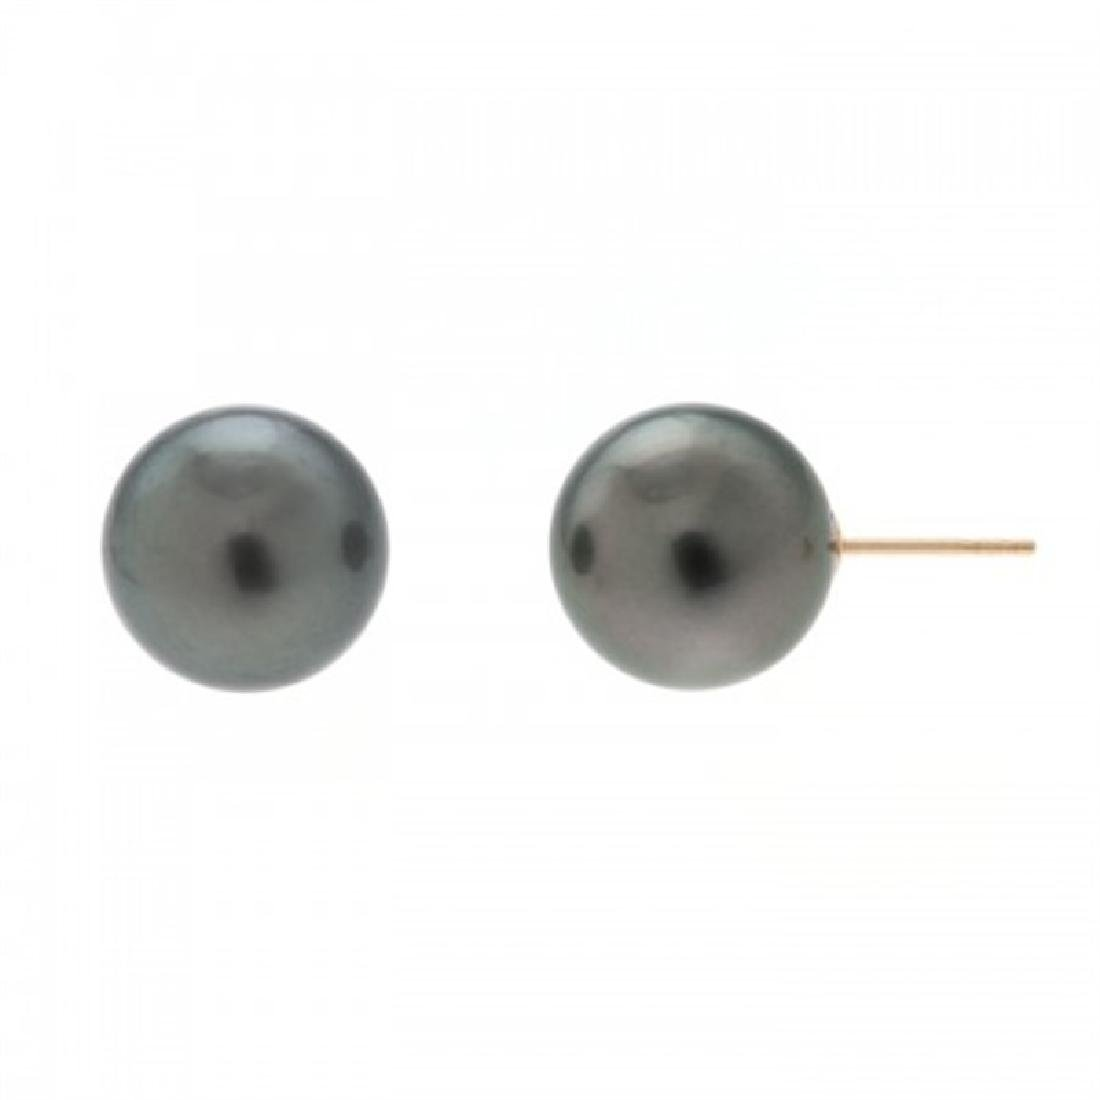 12.0-12.5mm Tahitian Black Pearl Stud Earrings